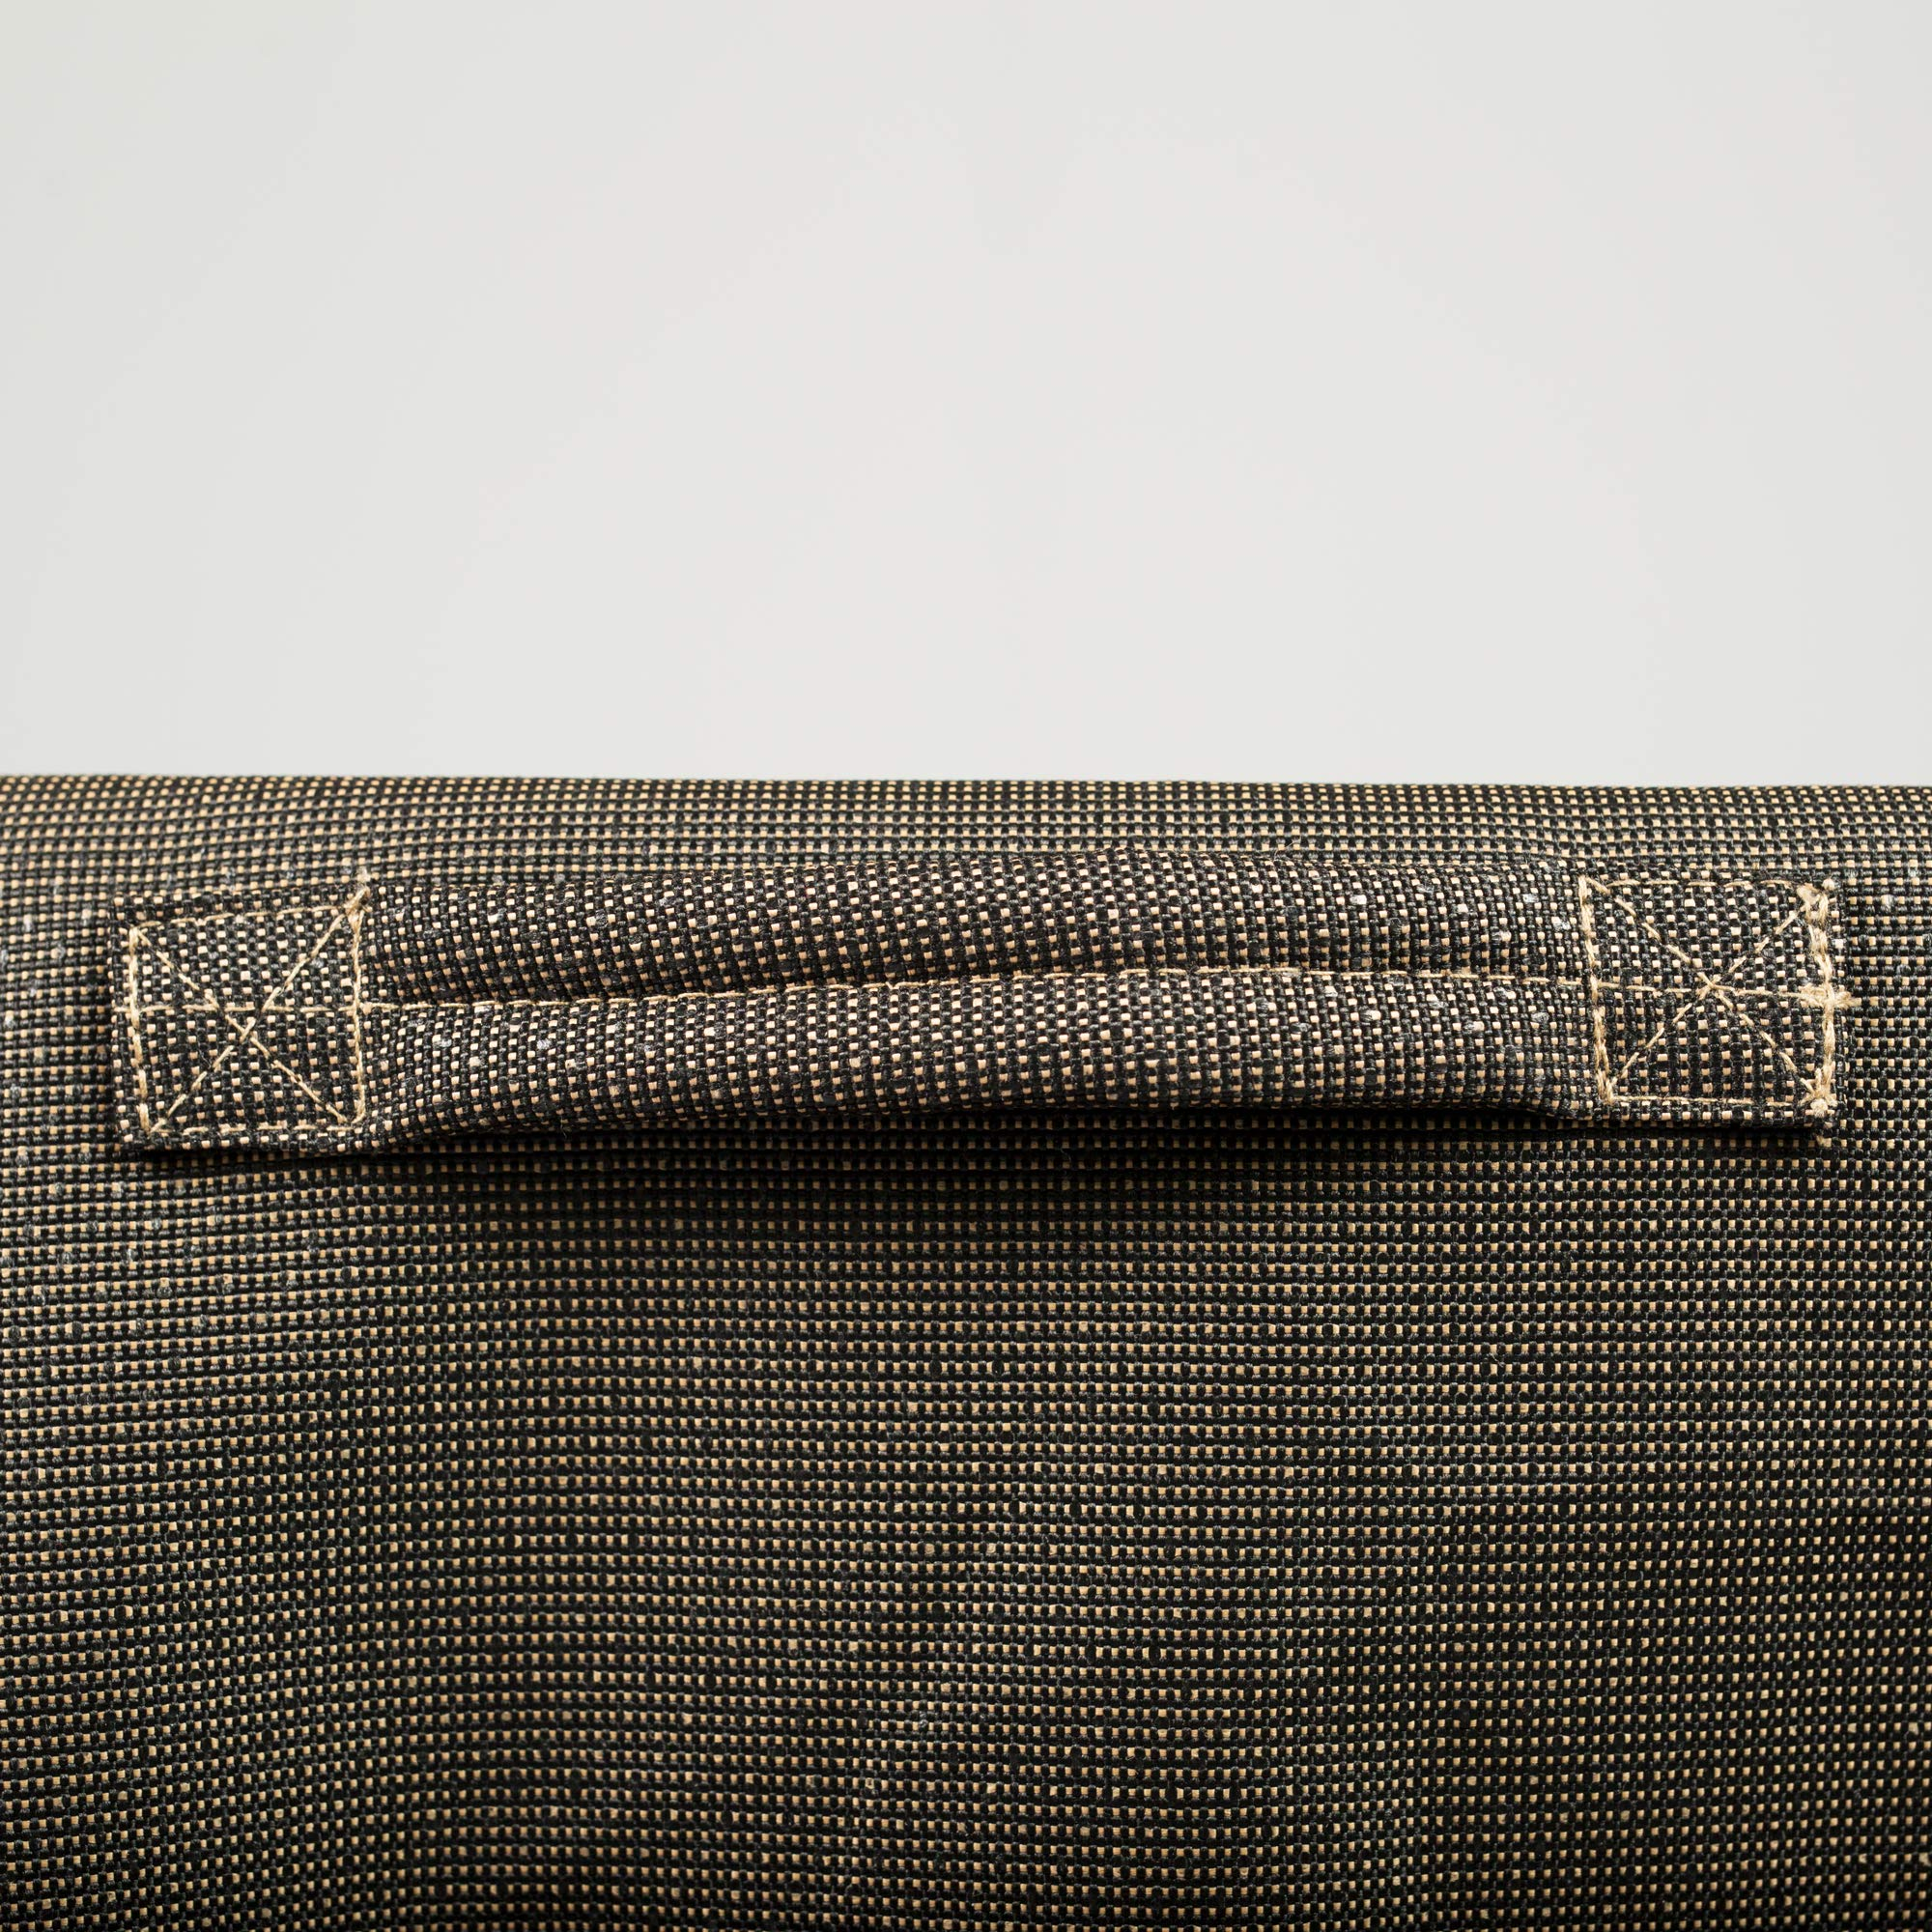 NeverWet Platinum Double Patio Chaise Lounge Cover, (Black and Tan Weave) by EmpireCovers (Image #5)